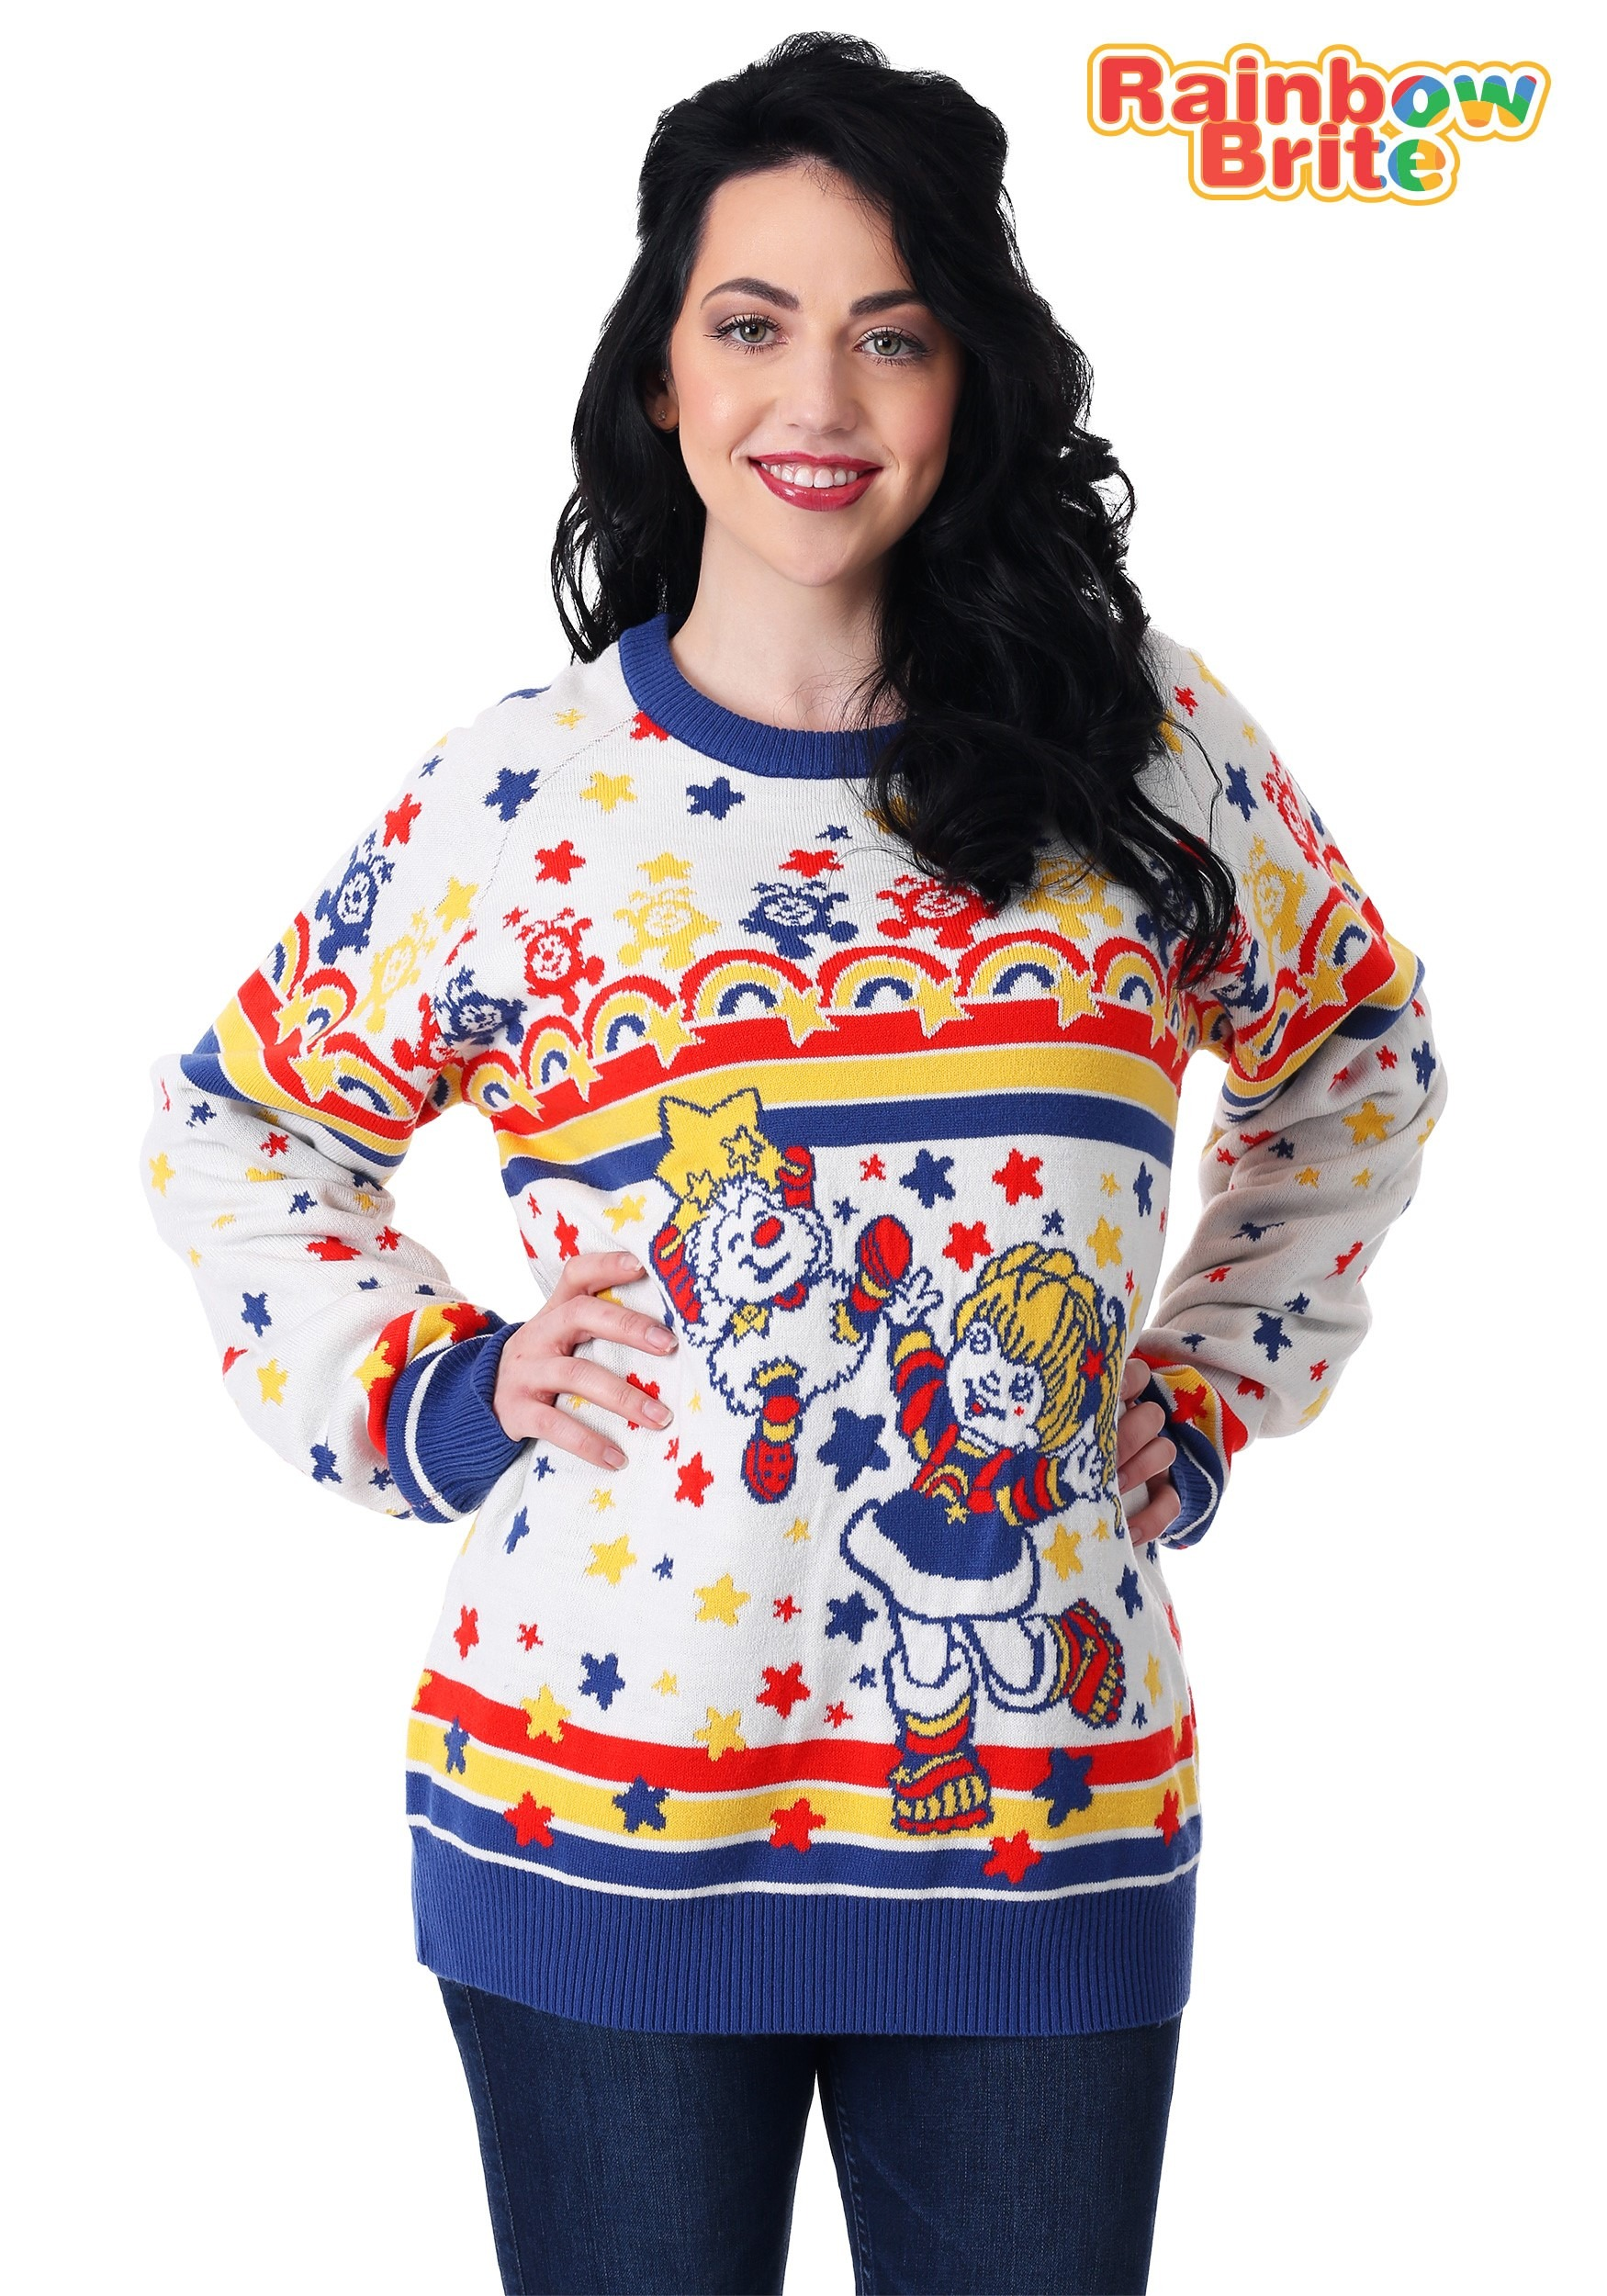 bfb7c63efc3c7 ... Classic Rainbow Brite Adult Ugly Christmas Sweater Alt